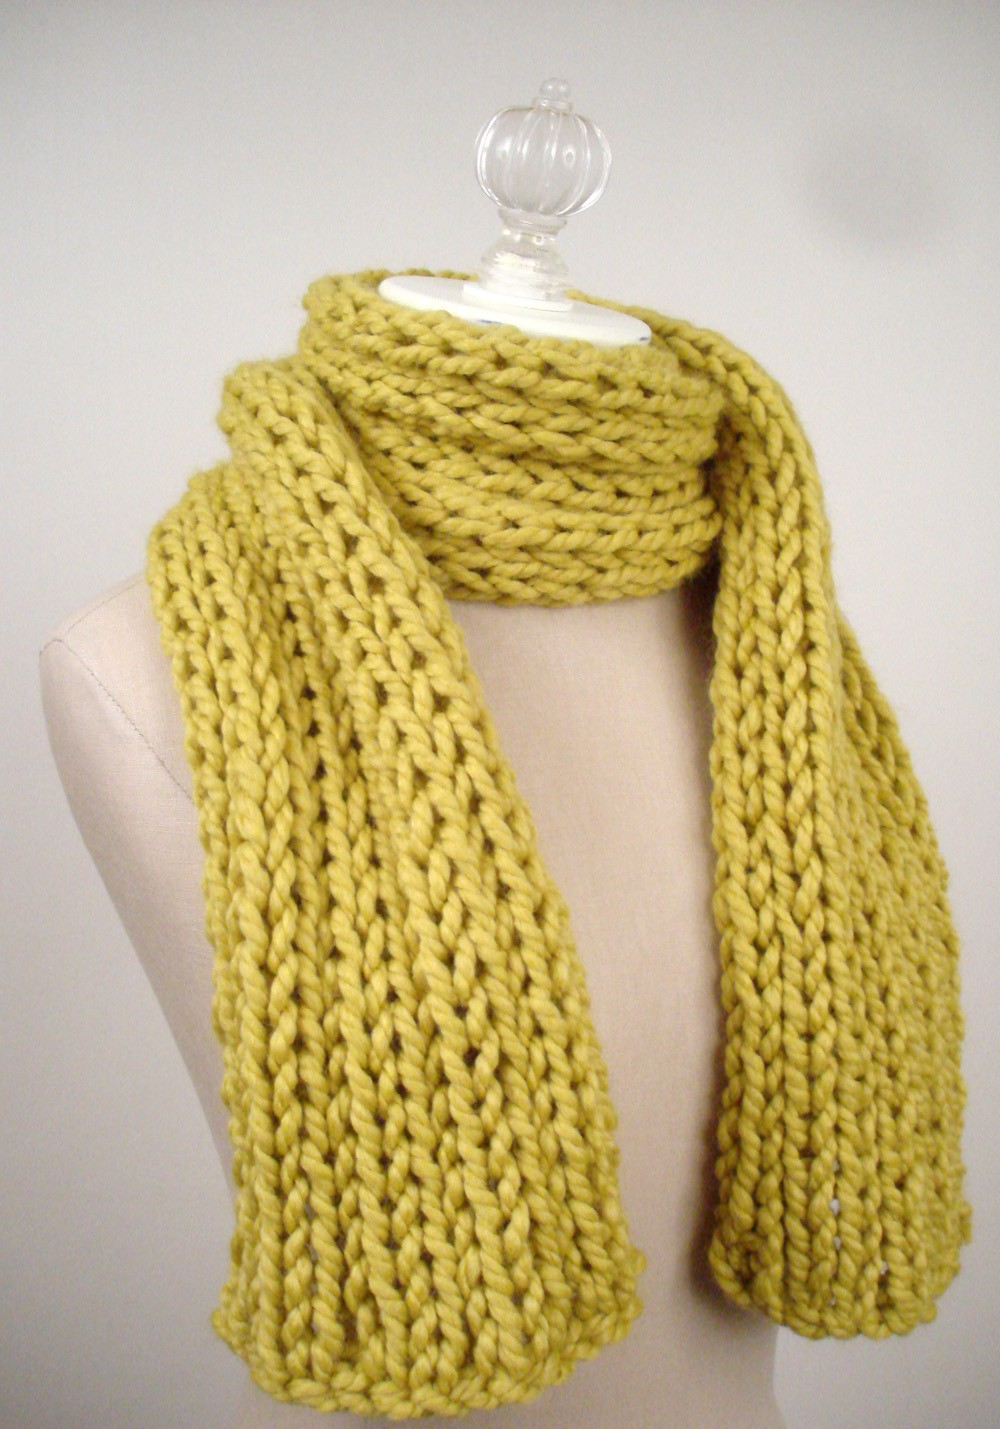 Easy Scarf Knitting Patterns For Beginners : EASY KNIT SCARF PATTERNS   Free Patterns